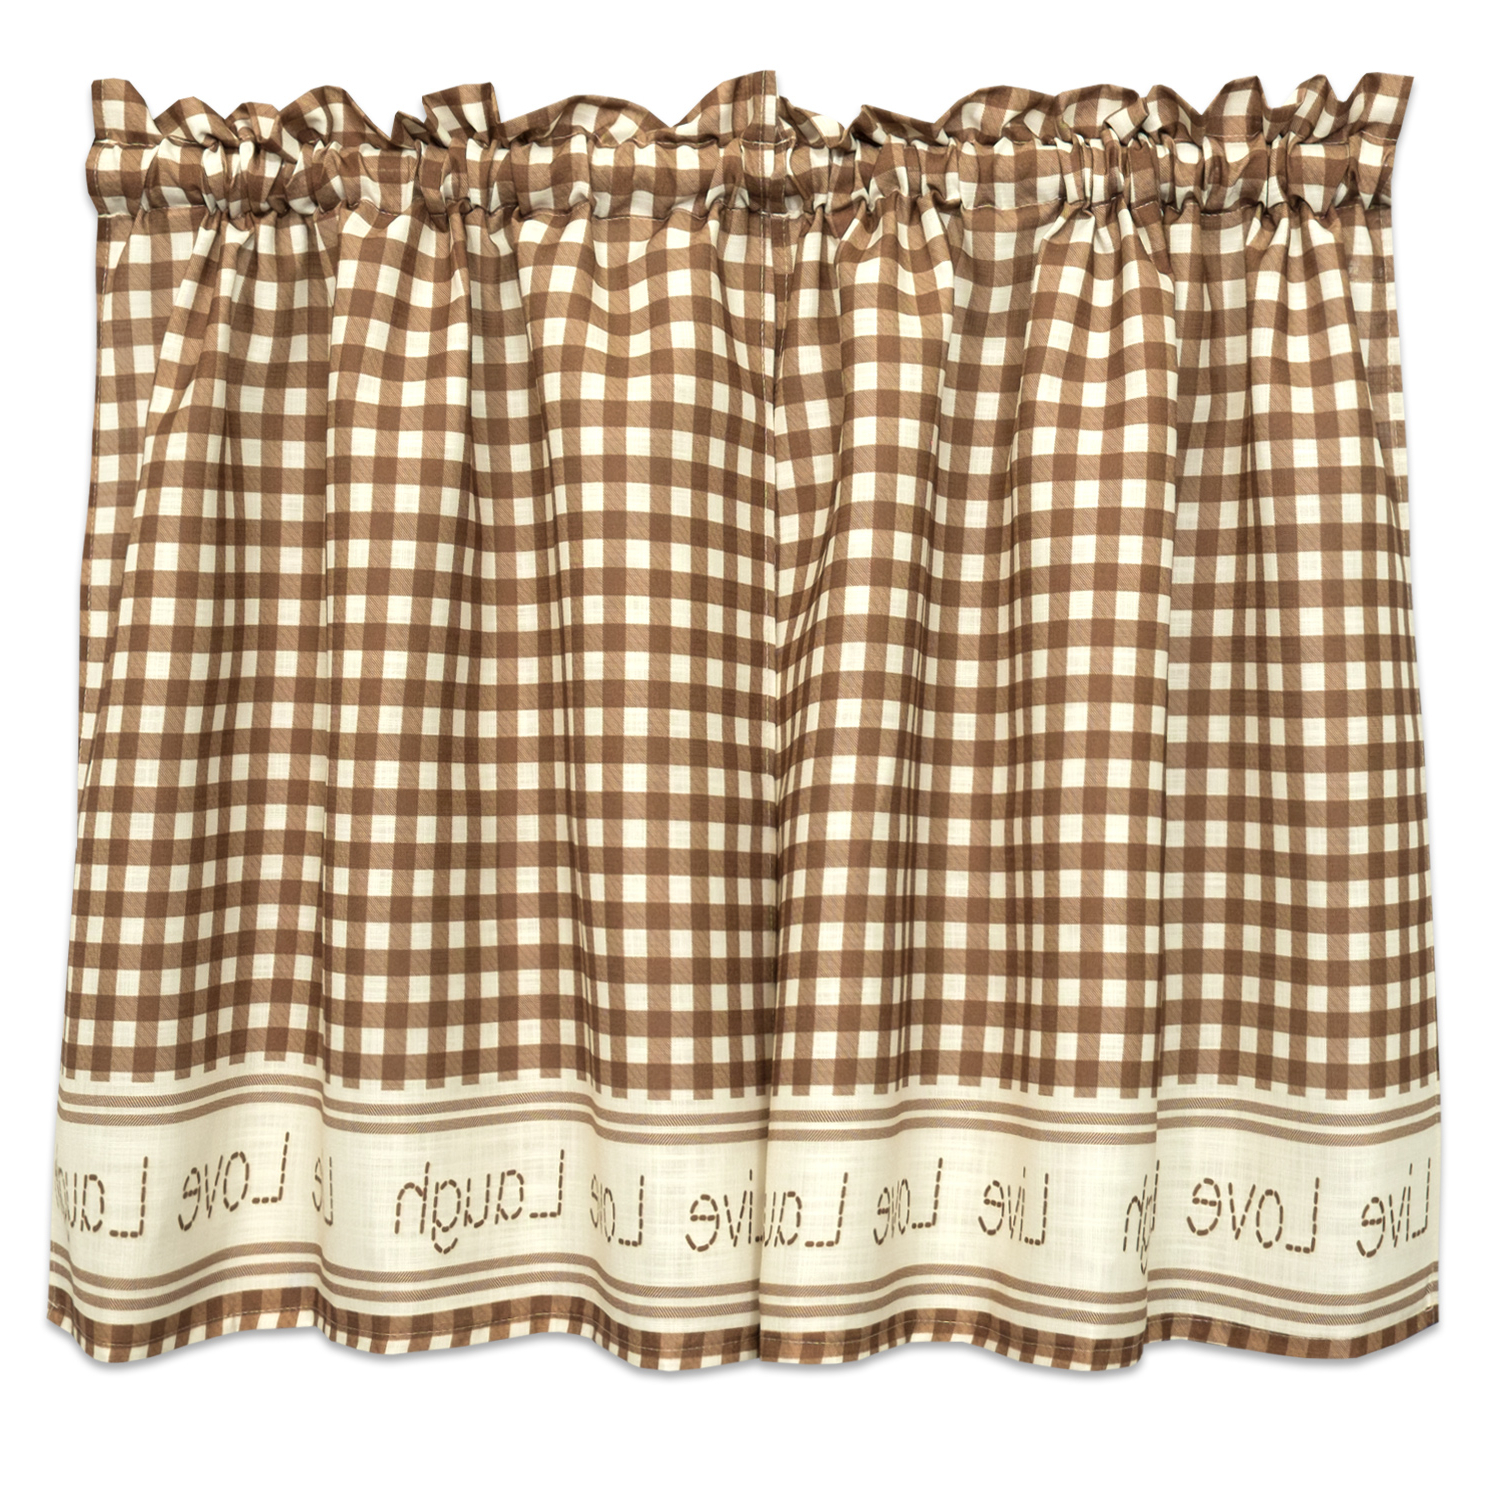 Gingham Stitch Live Laugh Love Kitchen Curtain Tier Pair Or Valance Toast Pertaining To Widely Used Live, Love, Laugh Window Curtain Tier Pair And Valance Sets (View 8 of 20)